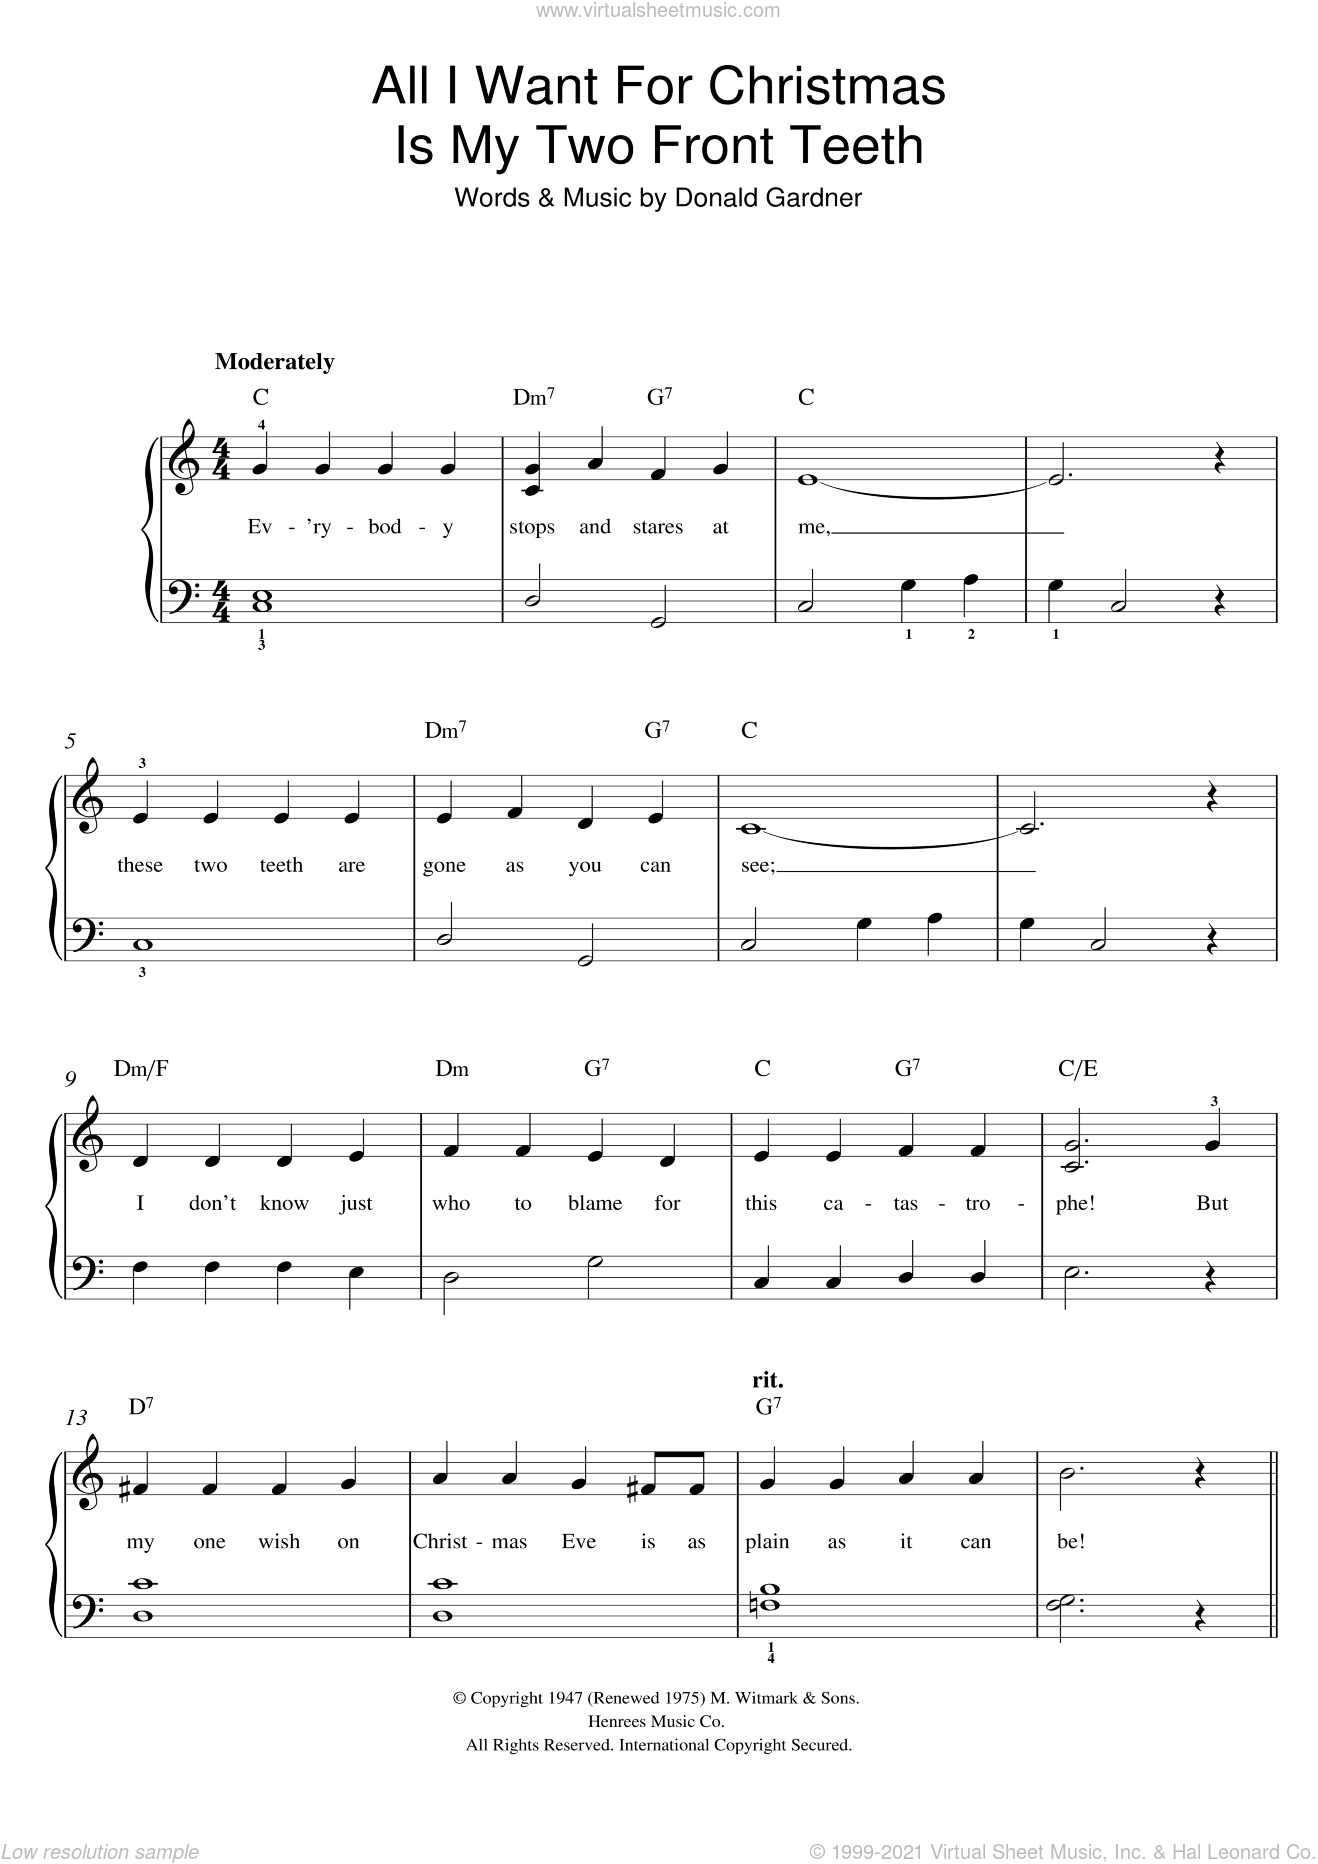 All I Want For Christmas Is My Two Front Teeth sheet music for piano solo by Don Gardner, easy. Score Image Preview.